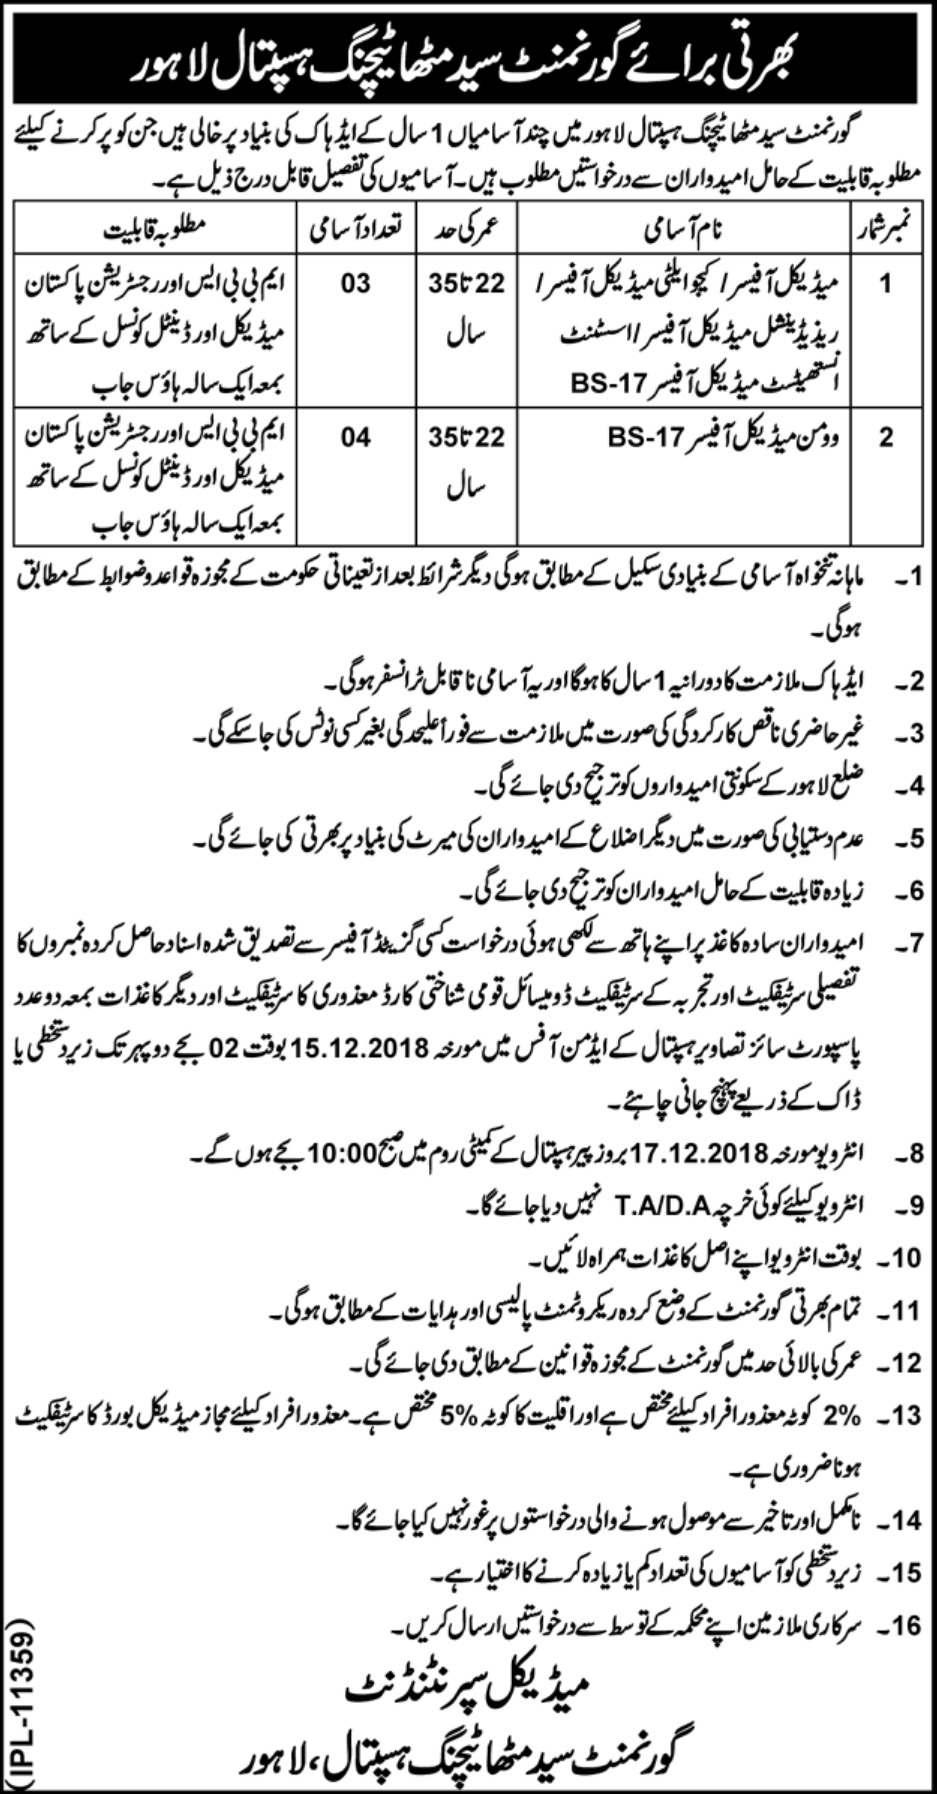 Government Syed Mitha Teaching Hospital Lahore Jobs 2018